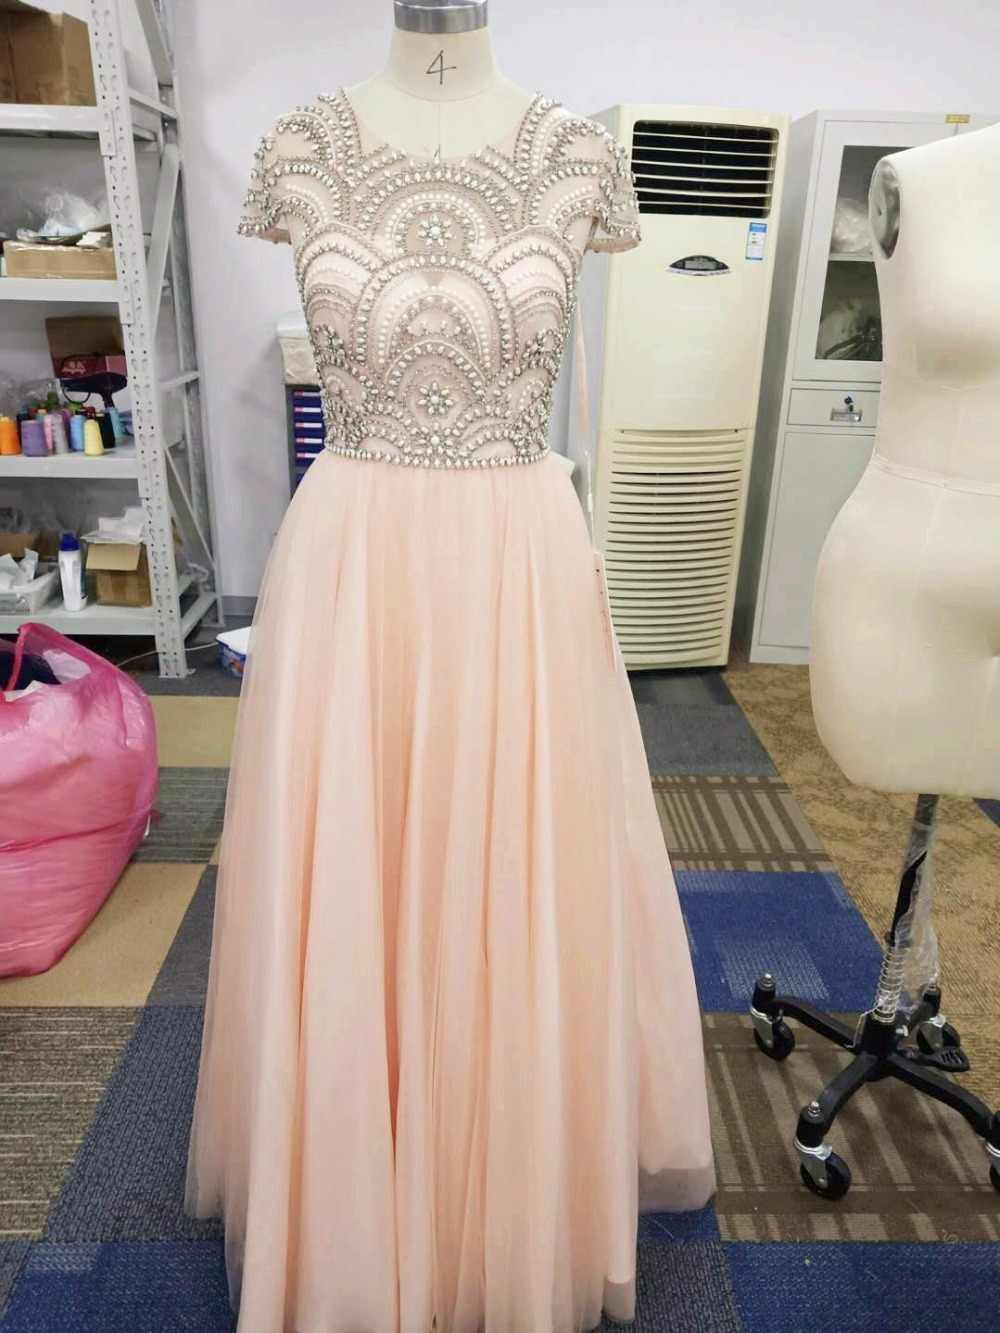 bacaba975455eb ... Formal Ball Gown Evening Dresses 2019 Elegant Blush Tulle Cap Sleeve  Beading Prom Maxi Party Gowns ...